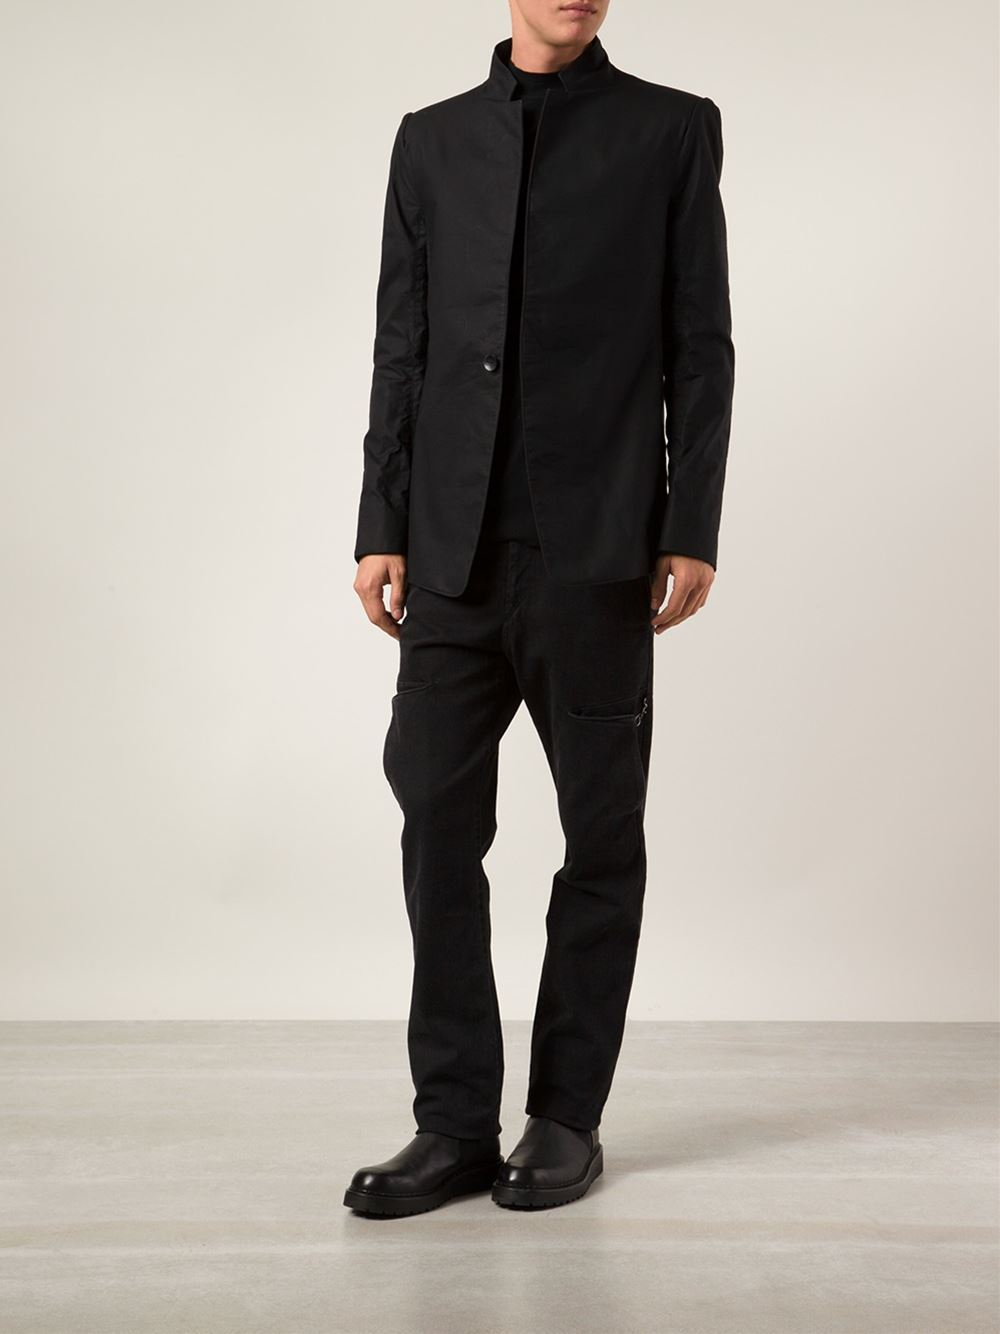 Lyst - Y. Project High-Neck Blazer In Black For Men